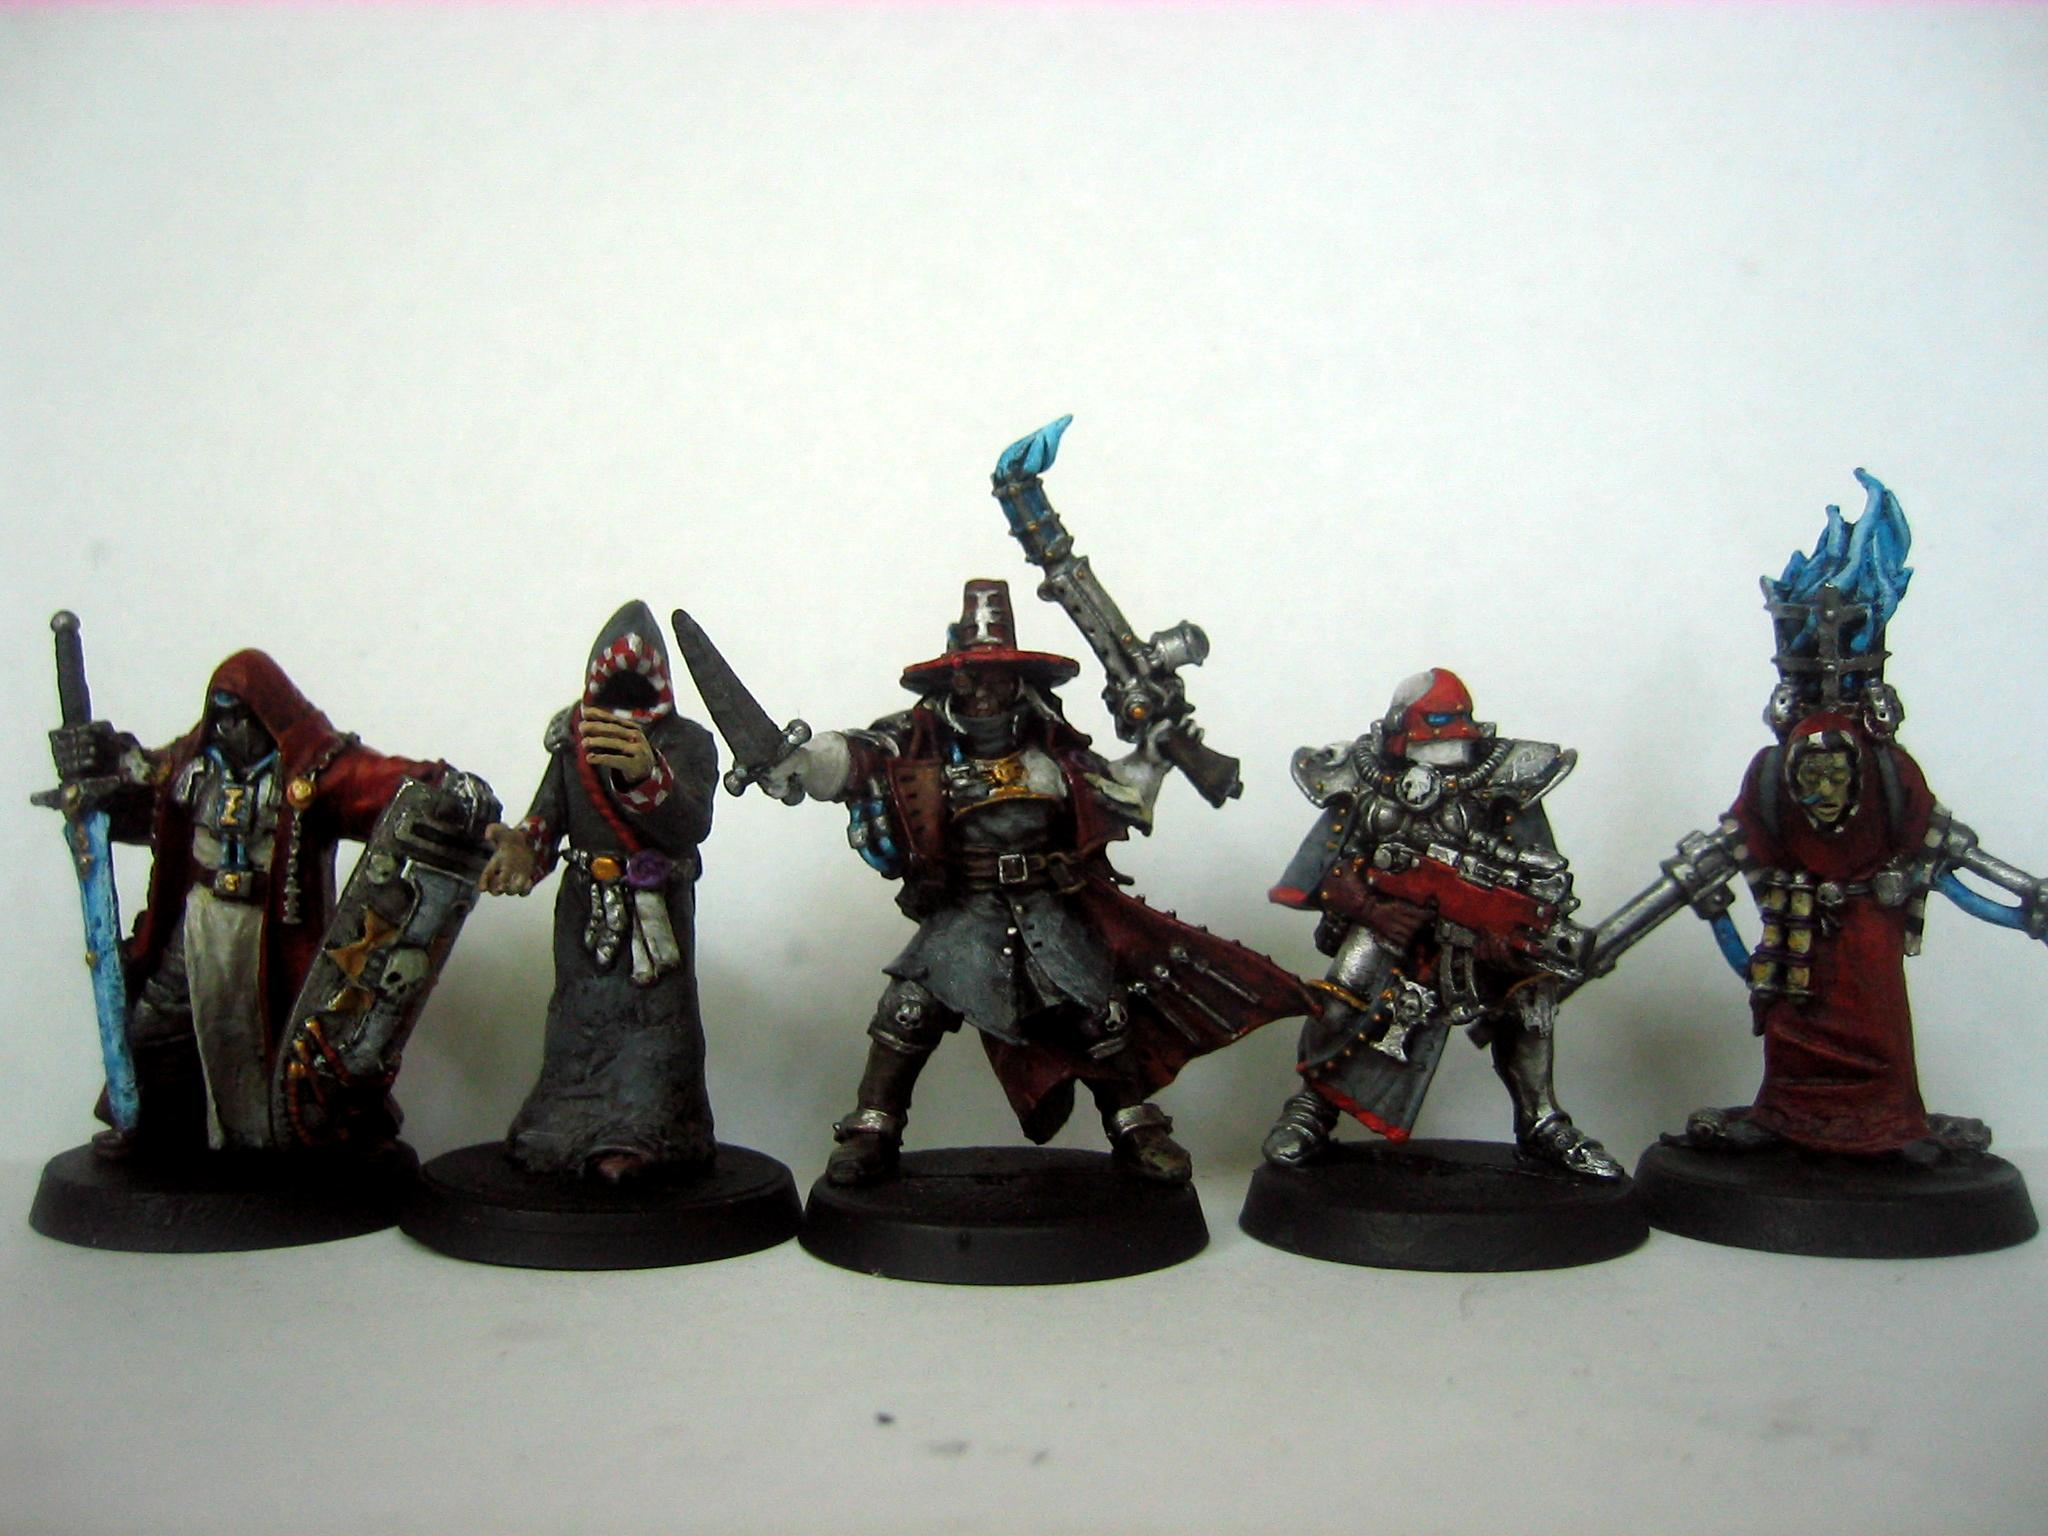 Acolytes, Crusader, Group, Hereticus, Inq28, Inquisitor, Inquisitor Retinue, Ordo, Red, Retinue, Sisters Of Battle, Warhammer 40,000